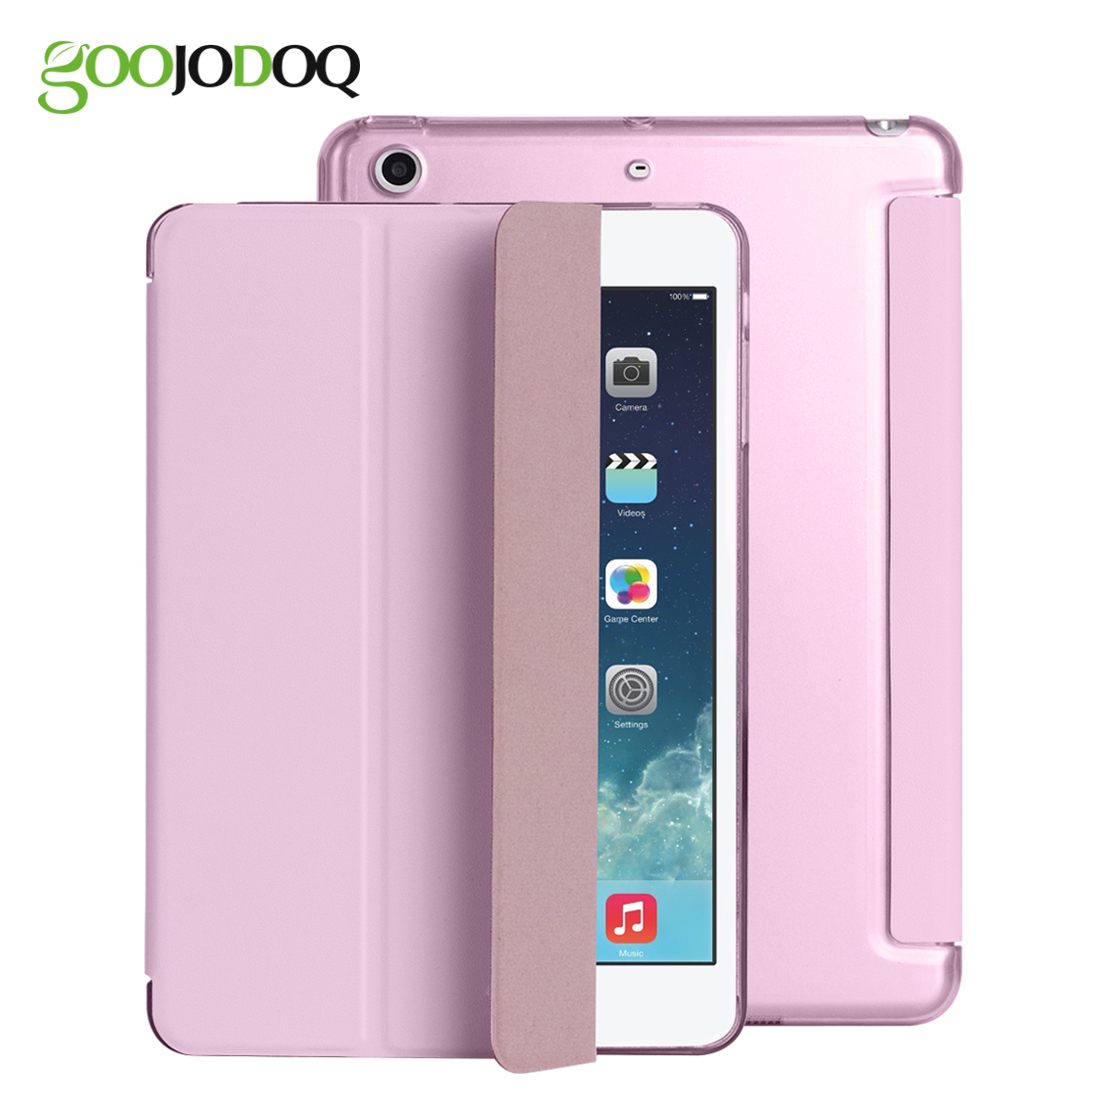 GOOJODOQ Smart Case Cover For Apple iPad Mini 4 Translucent PC Back Ultra Slim Fit PU Leather Shell Protector Stand the tablet вентилятор titan tfd 9225gt12z